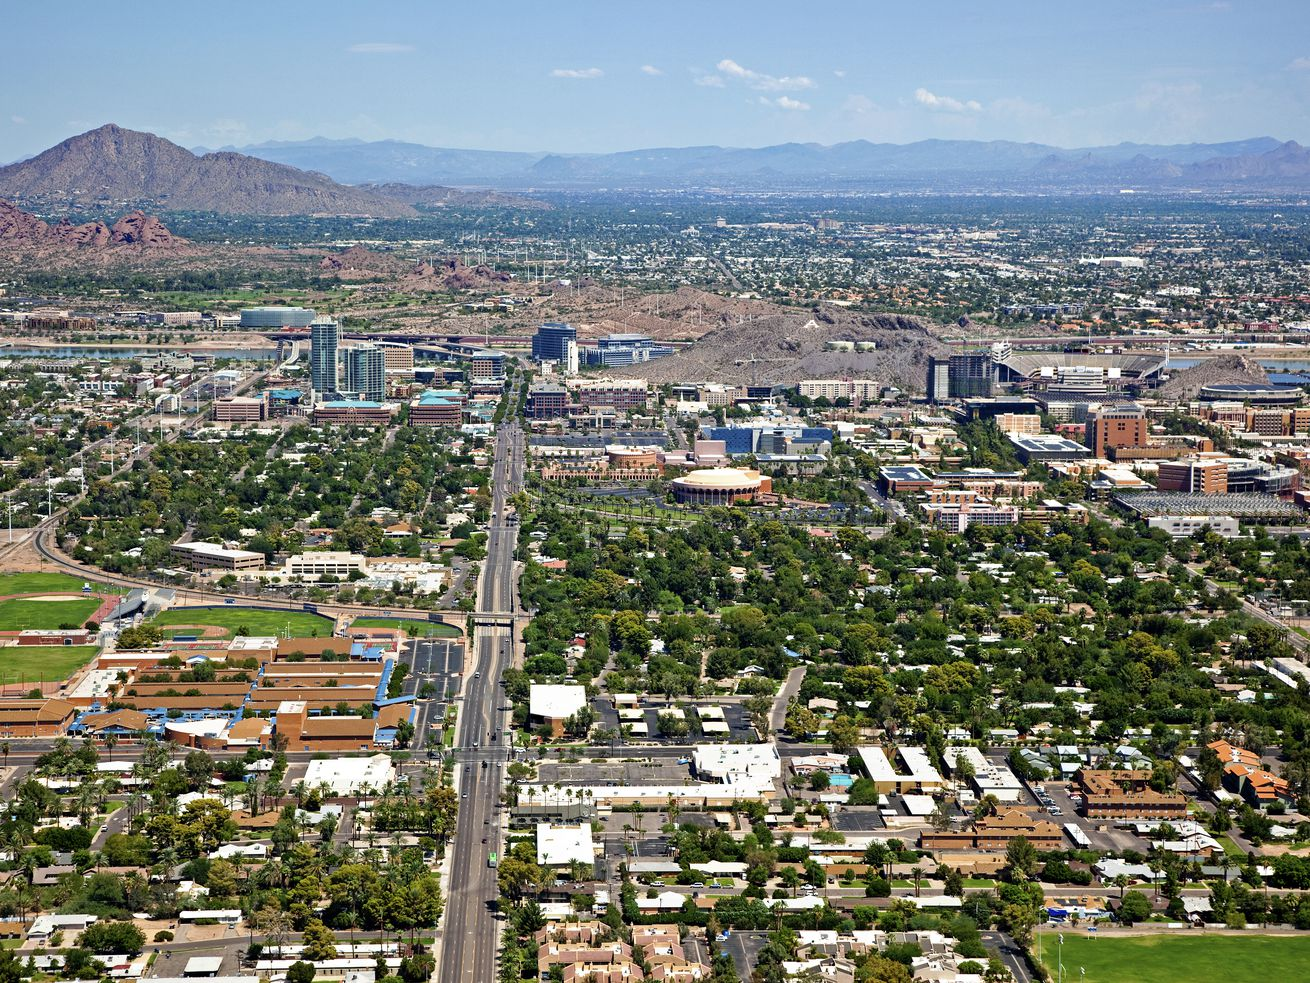 New housing development in Arizona won?t allow residents to bring cars